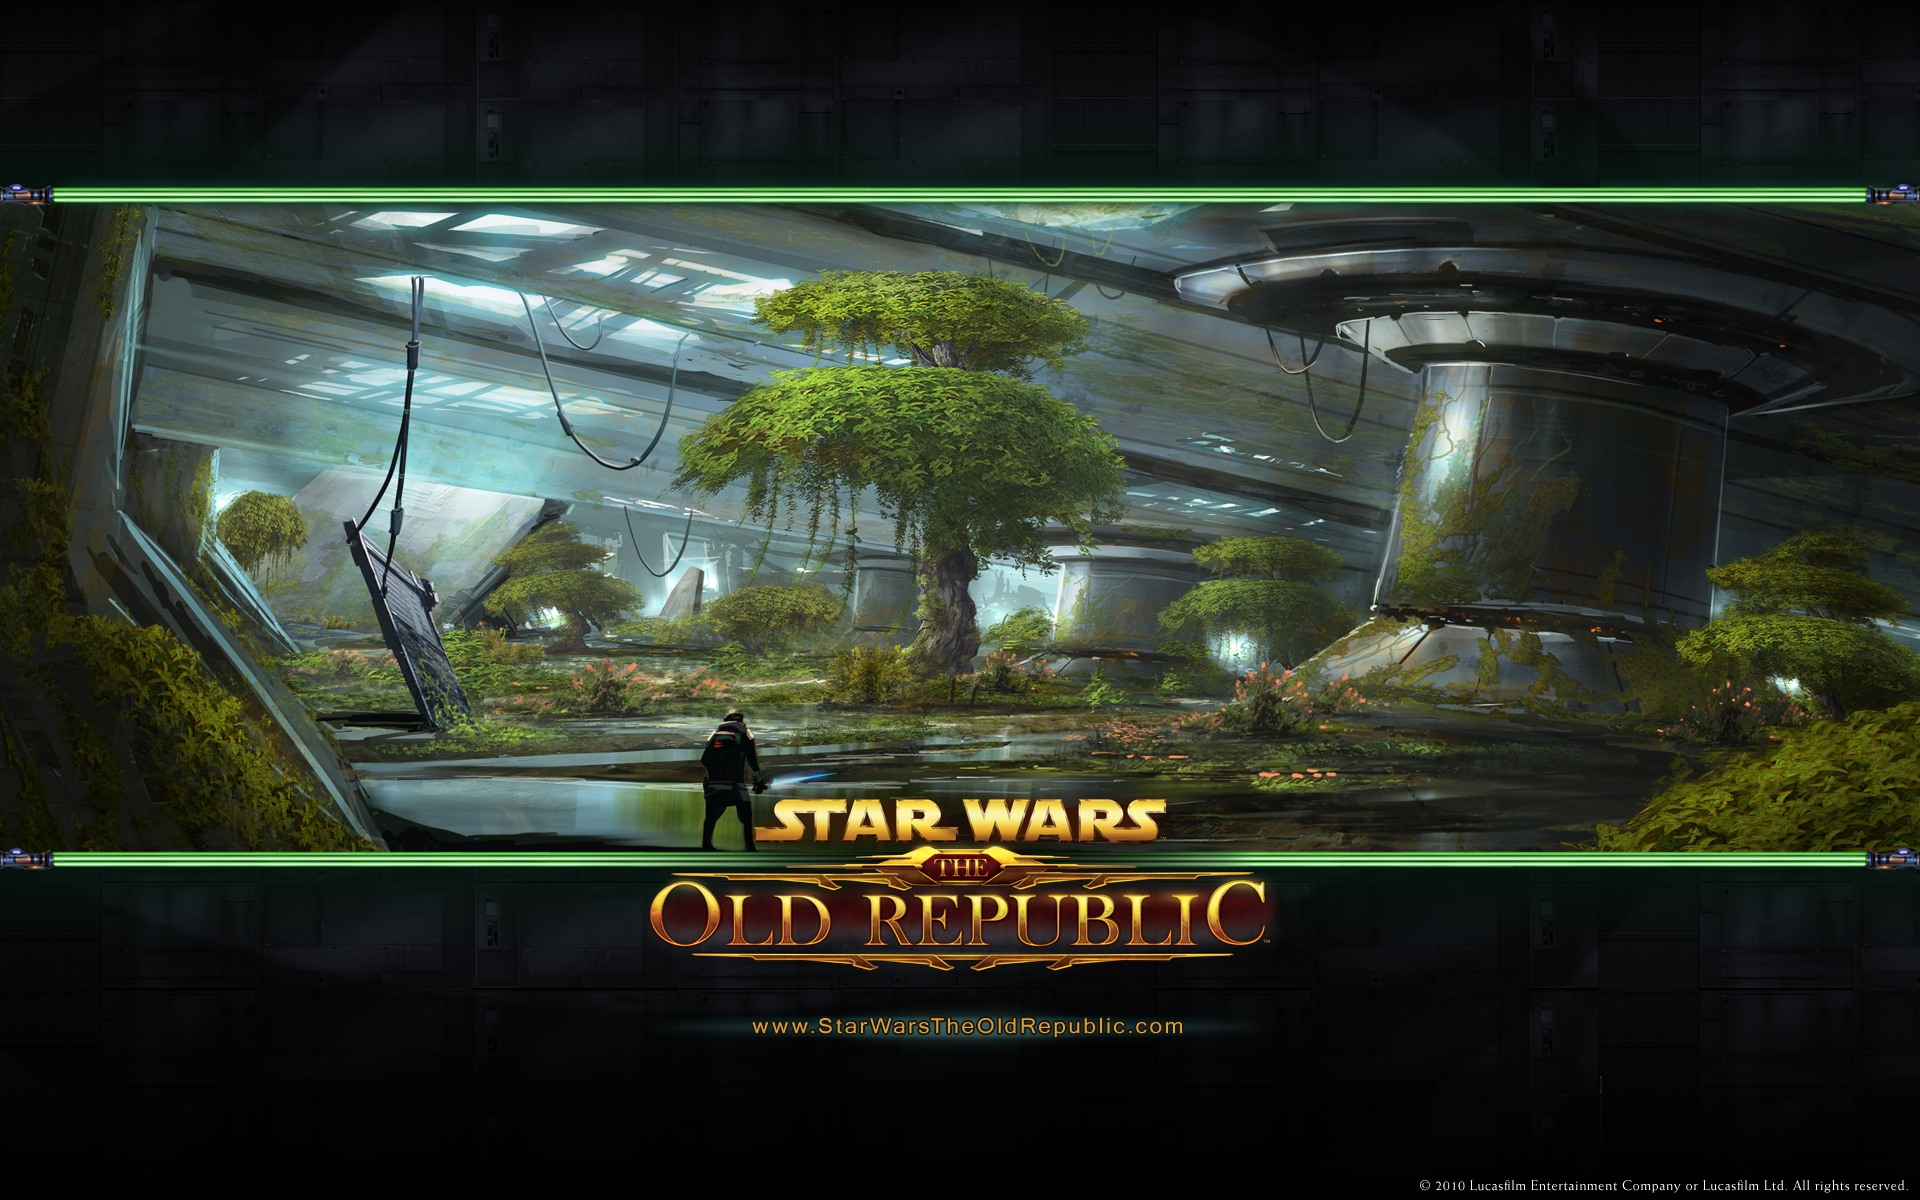 star wars wallpaper republic old products environment original 1920x1200